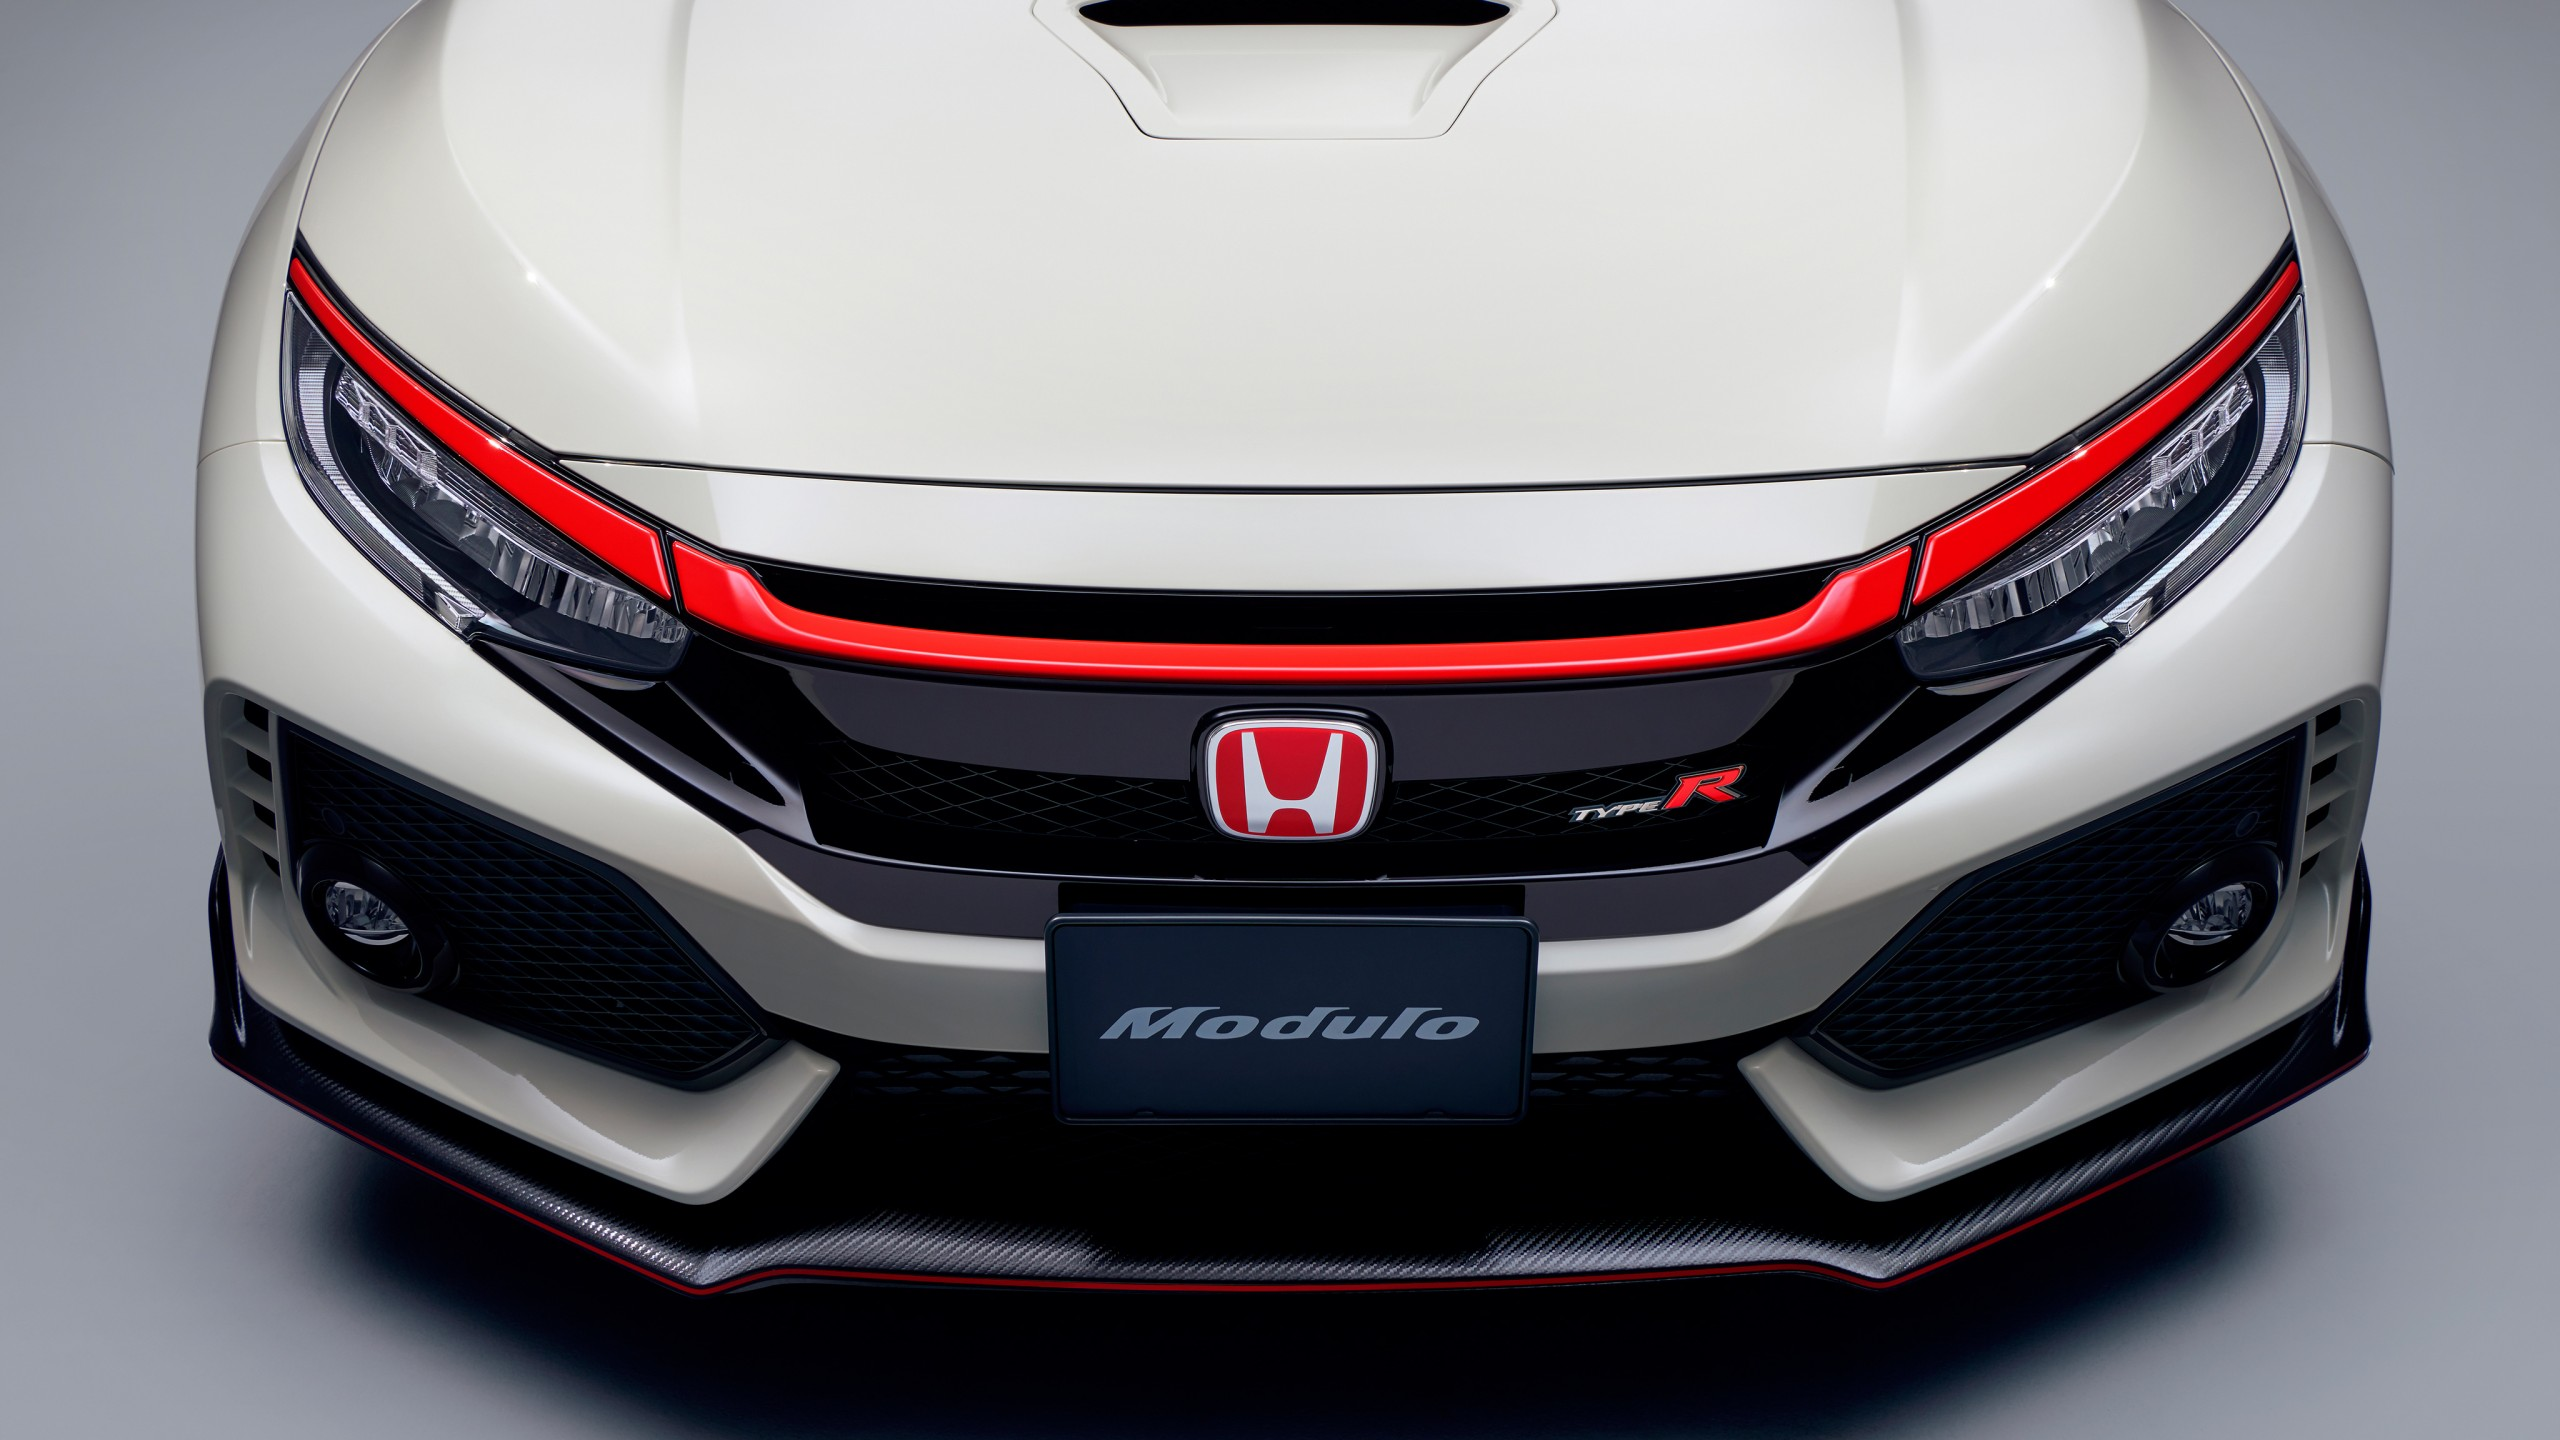 modulo honda civic type r 2017 wallpaper hd car wallpapers. Black Bedroom Furniture Sets. Home Design Ideas